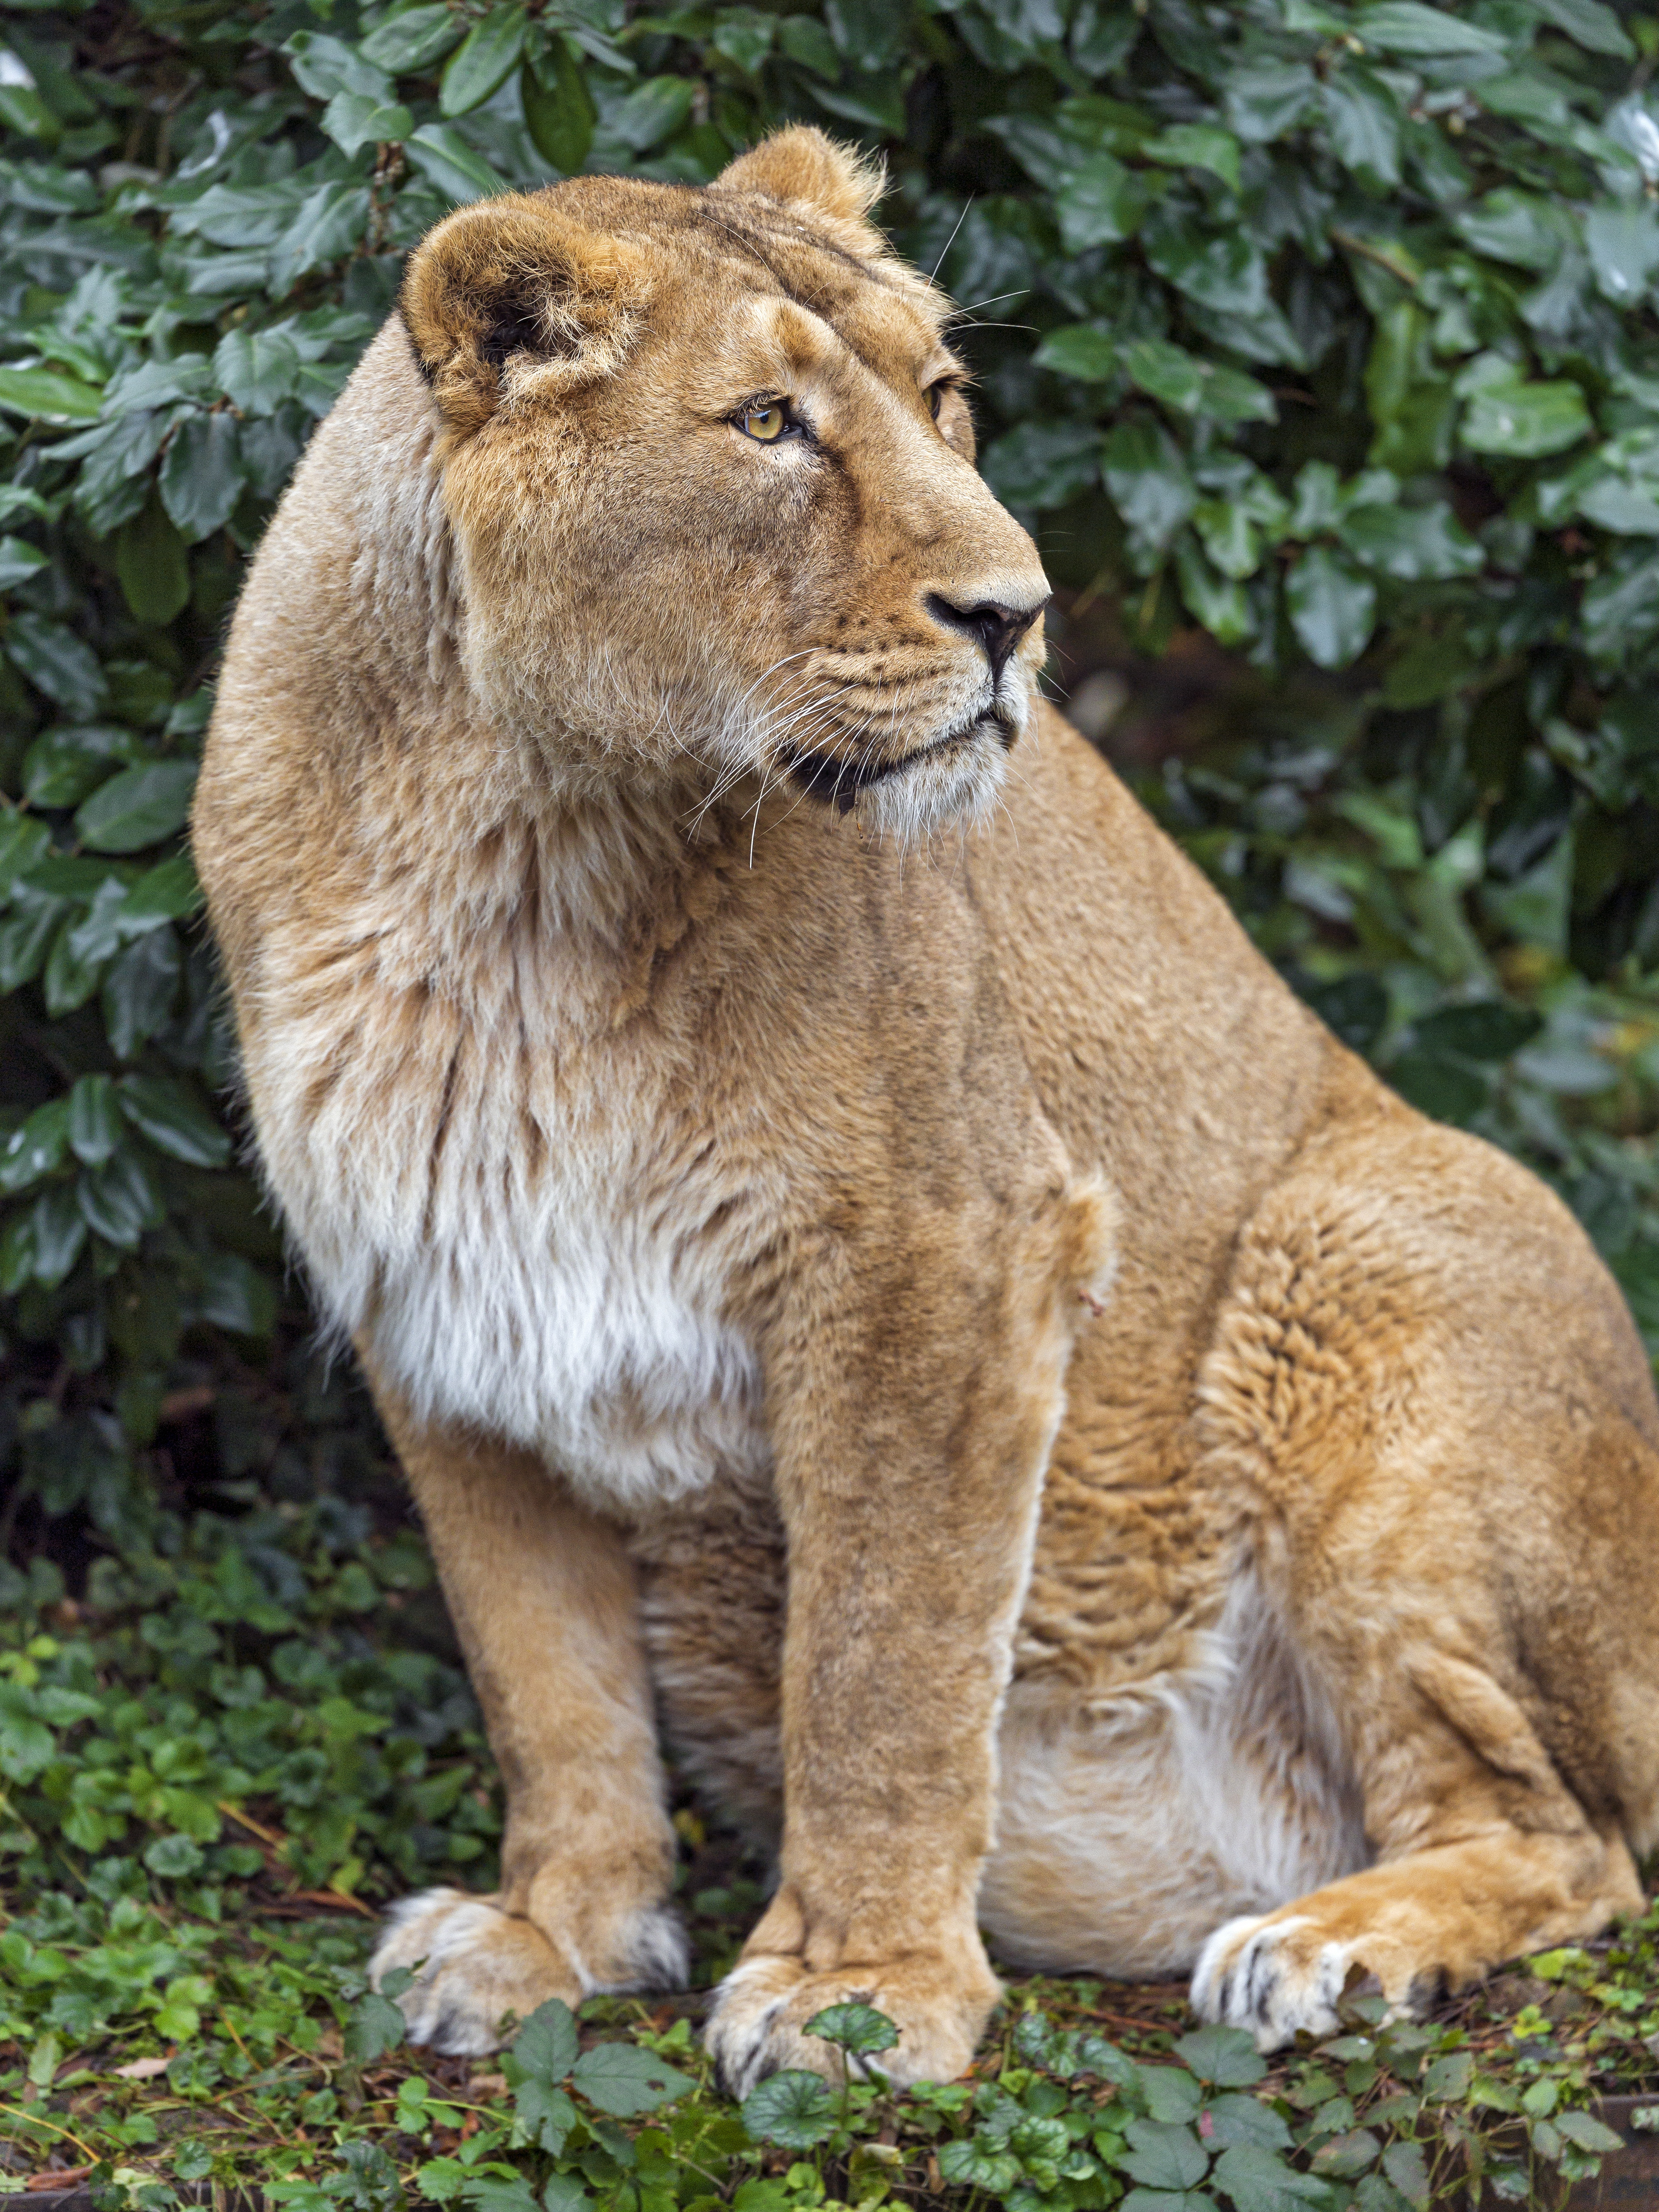 157679 download wallpaper Animals, Lioness, Big Cat, Beast, Predator screensavers and pictures for free